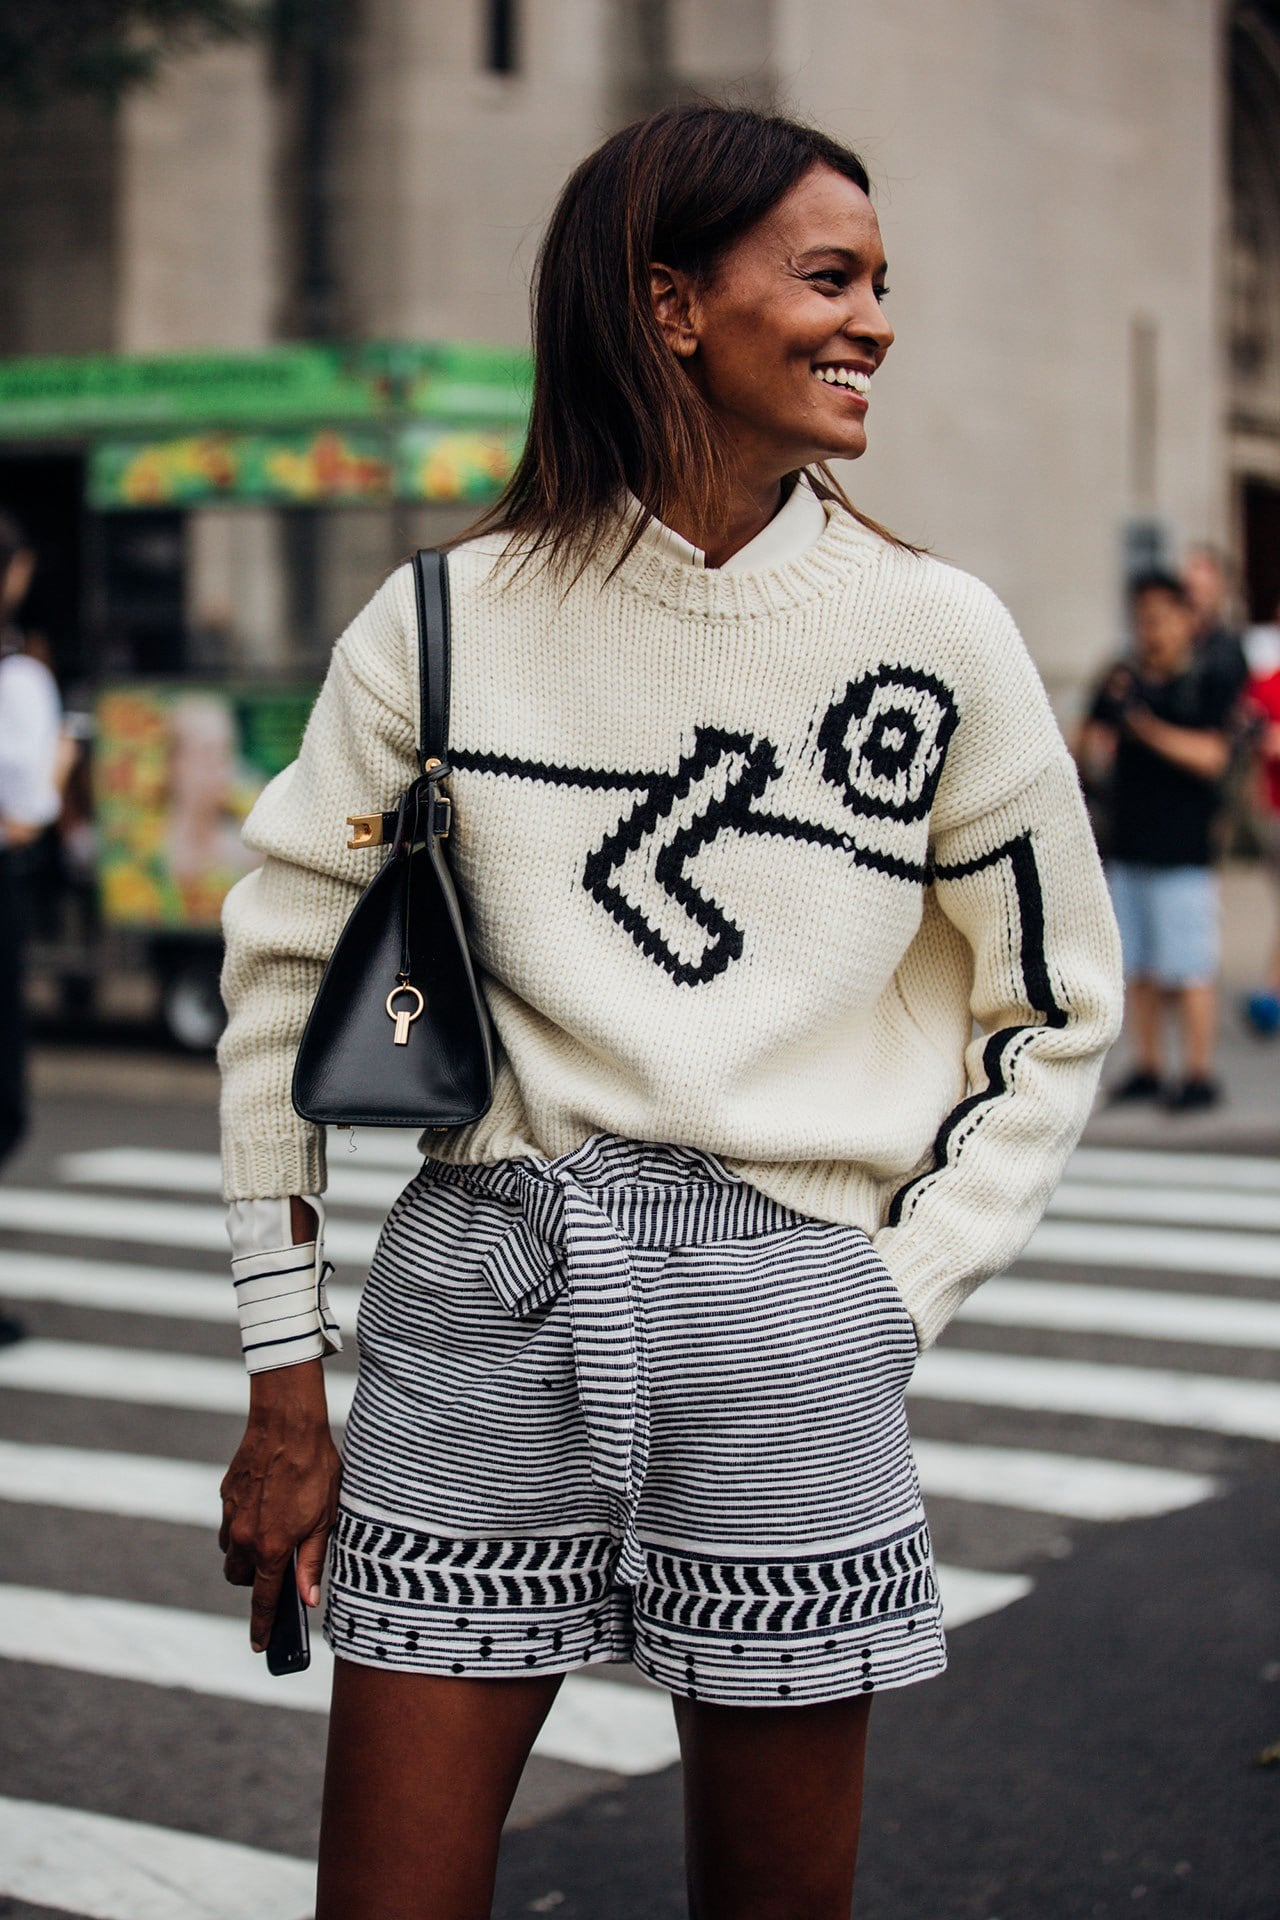 How to dress for the in-between weather according to New York's street style set